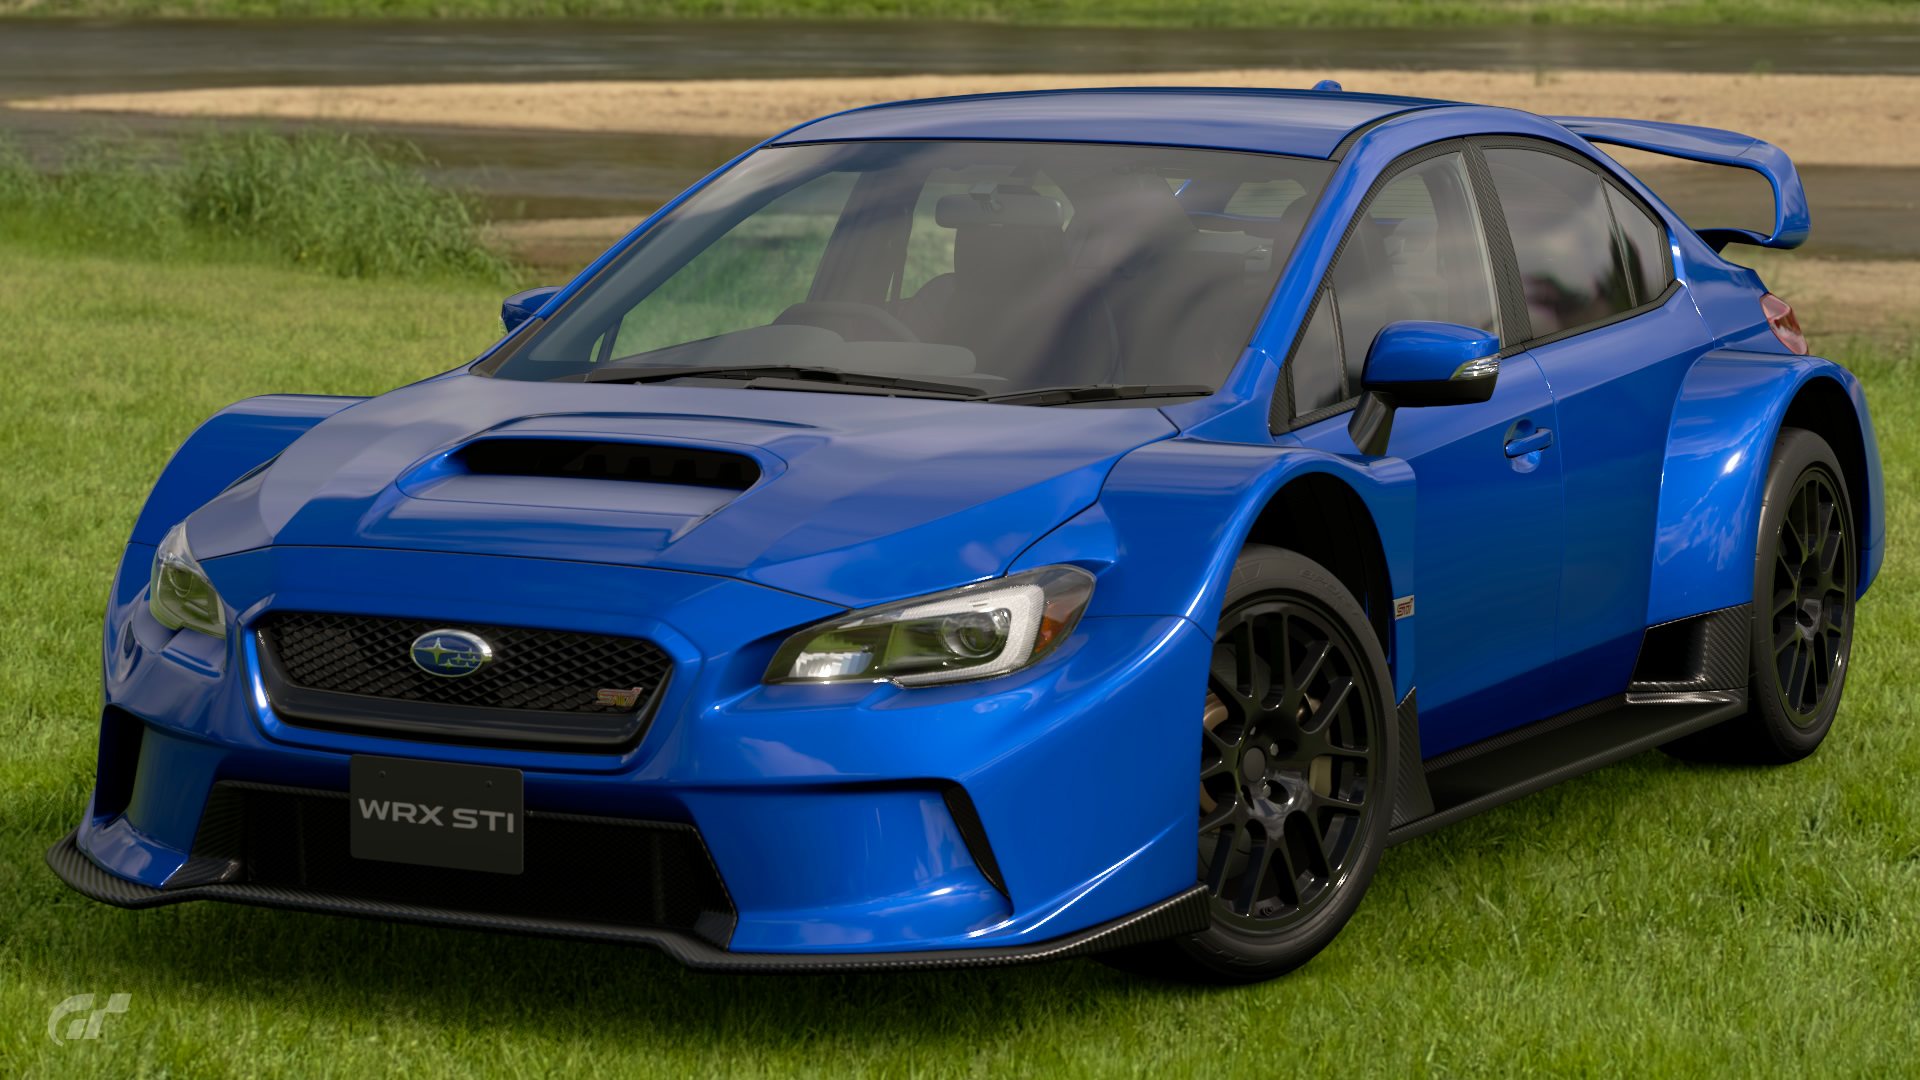 Subaru Wrx Sti For Sale >> Subaru WRX Gr.B Road Car | Gran Turismo Wiki | FANDOM powered by Wikia